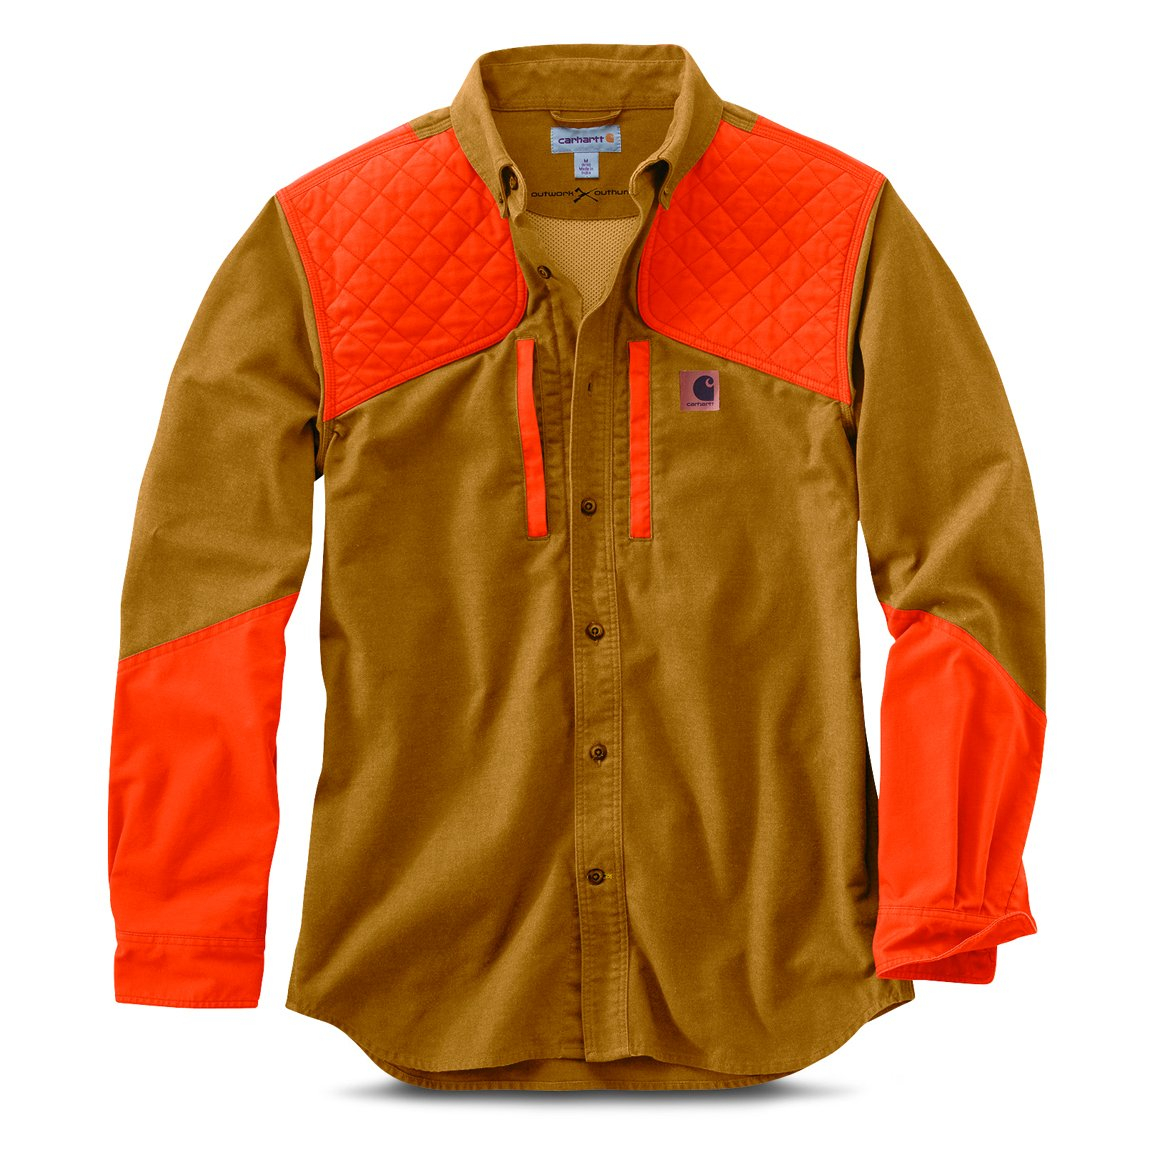 3b5a96eb4c1bf Double-front, quilted hunter orange nylon recoil pad at shoulders. Two  welted, mesh-lined pockets at chest with ...